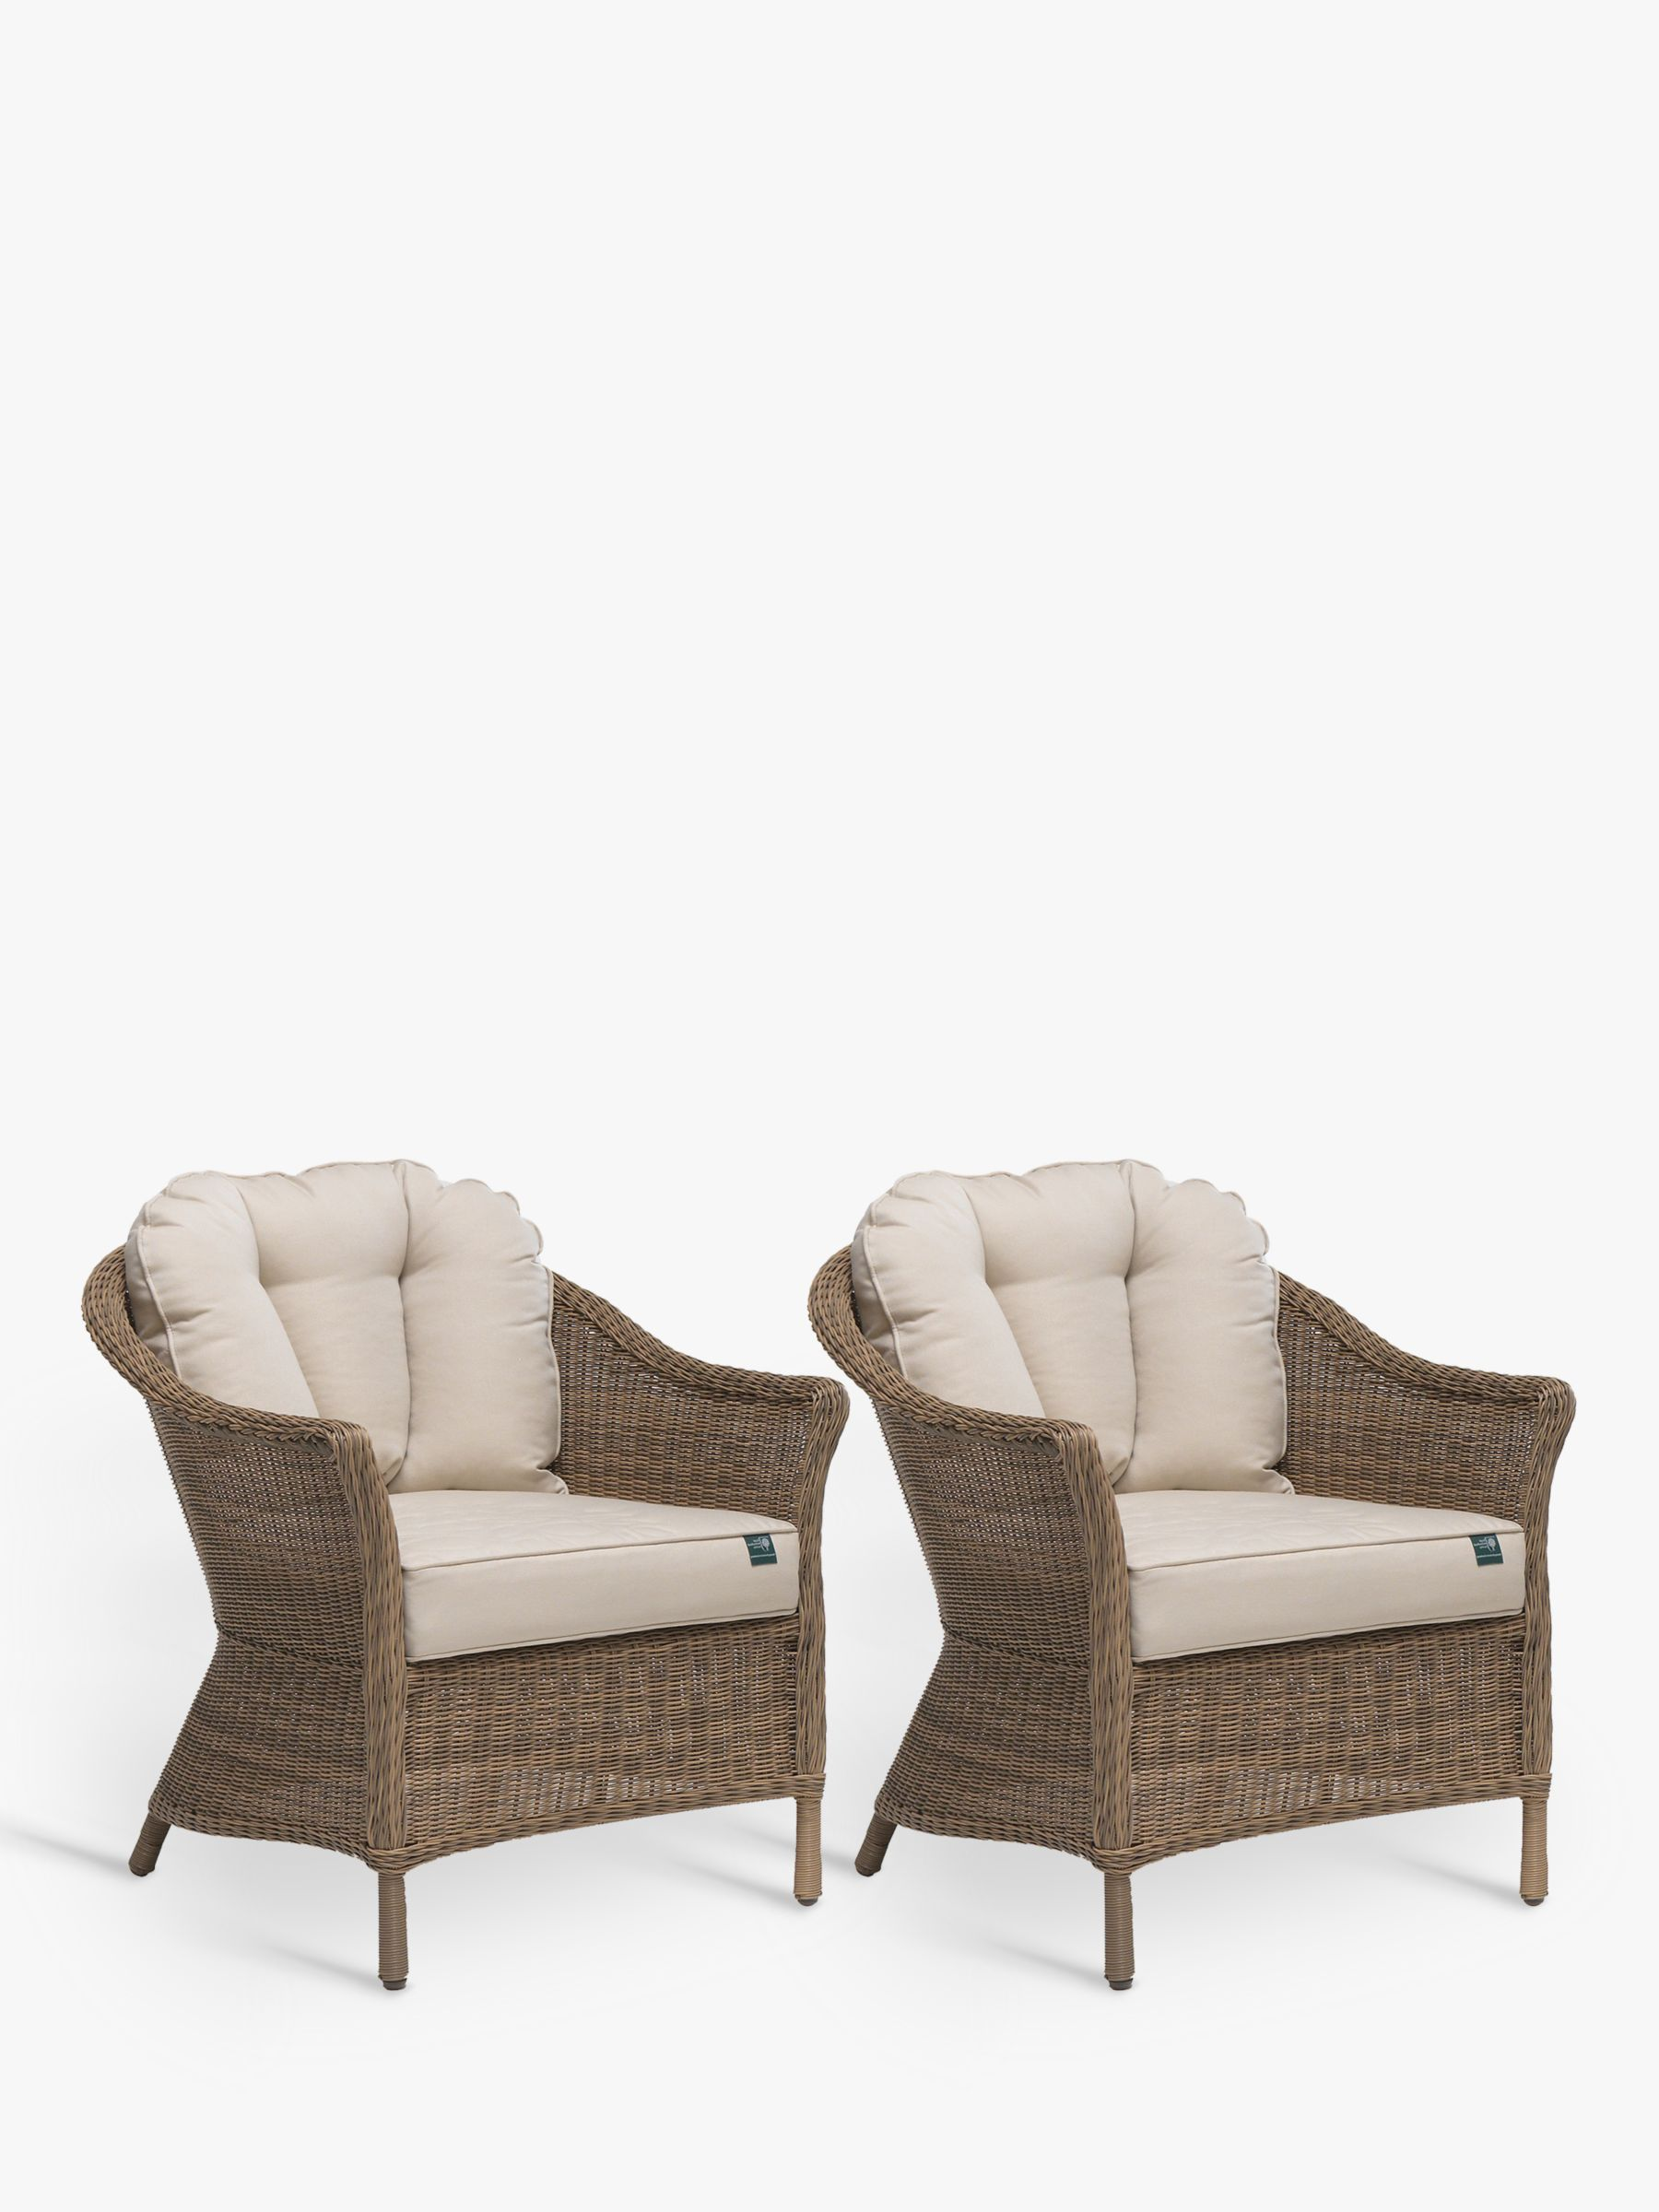 Kettler KETTLER RHS Harlow Carr Garden Lounging Armchairs, Set of 2, Natural